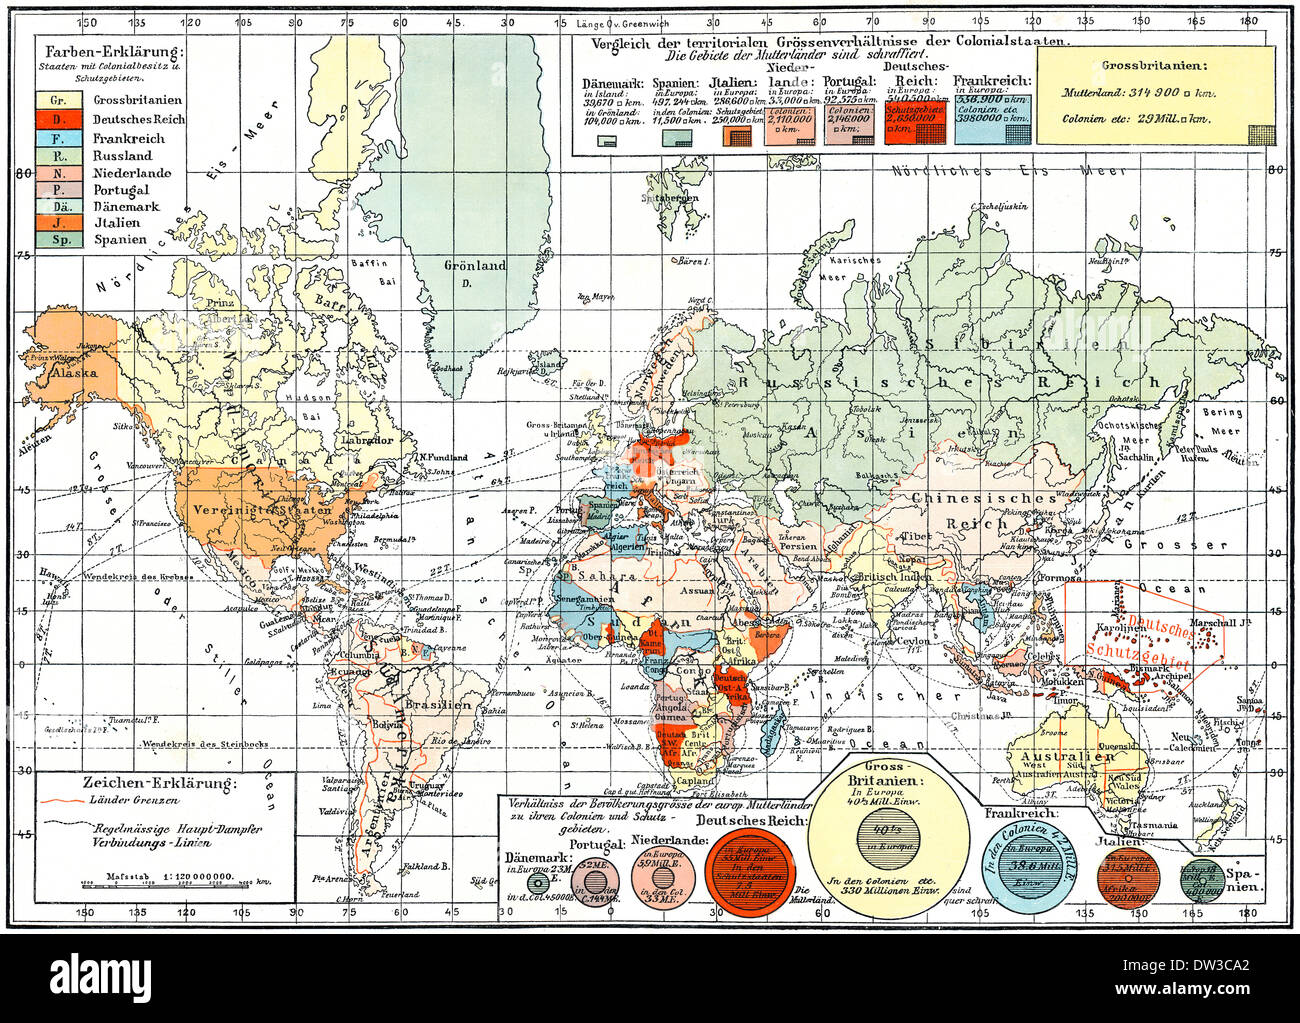 Map of colonial empires throughout the world, end of the 19th century, - Stock Image